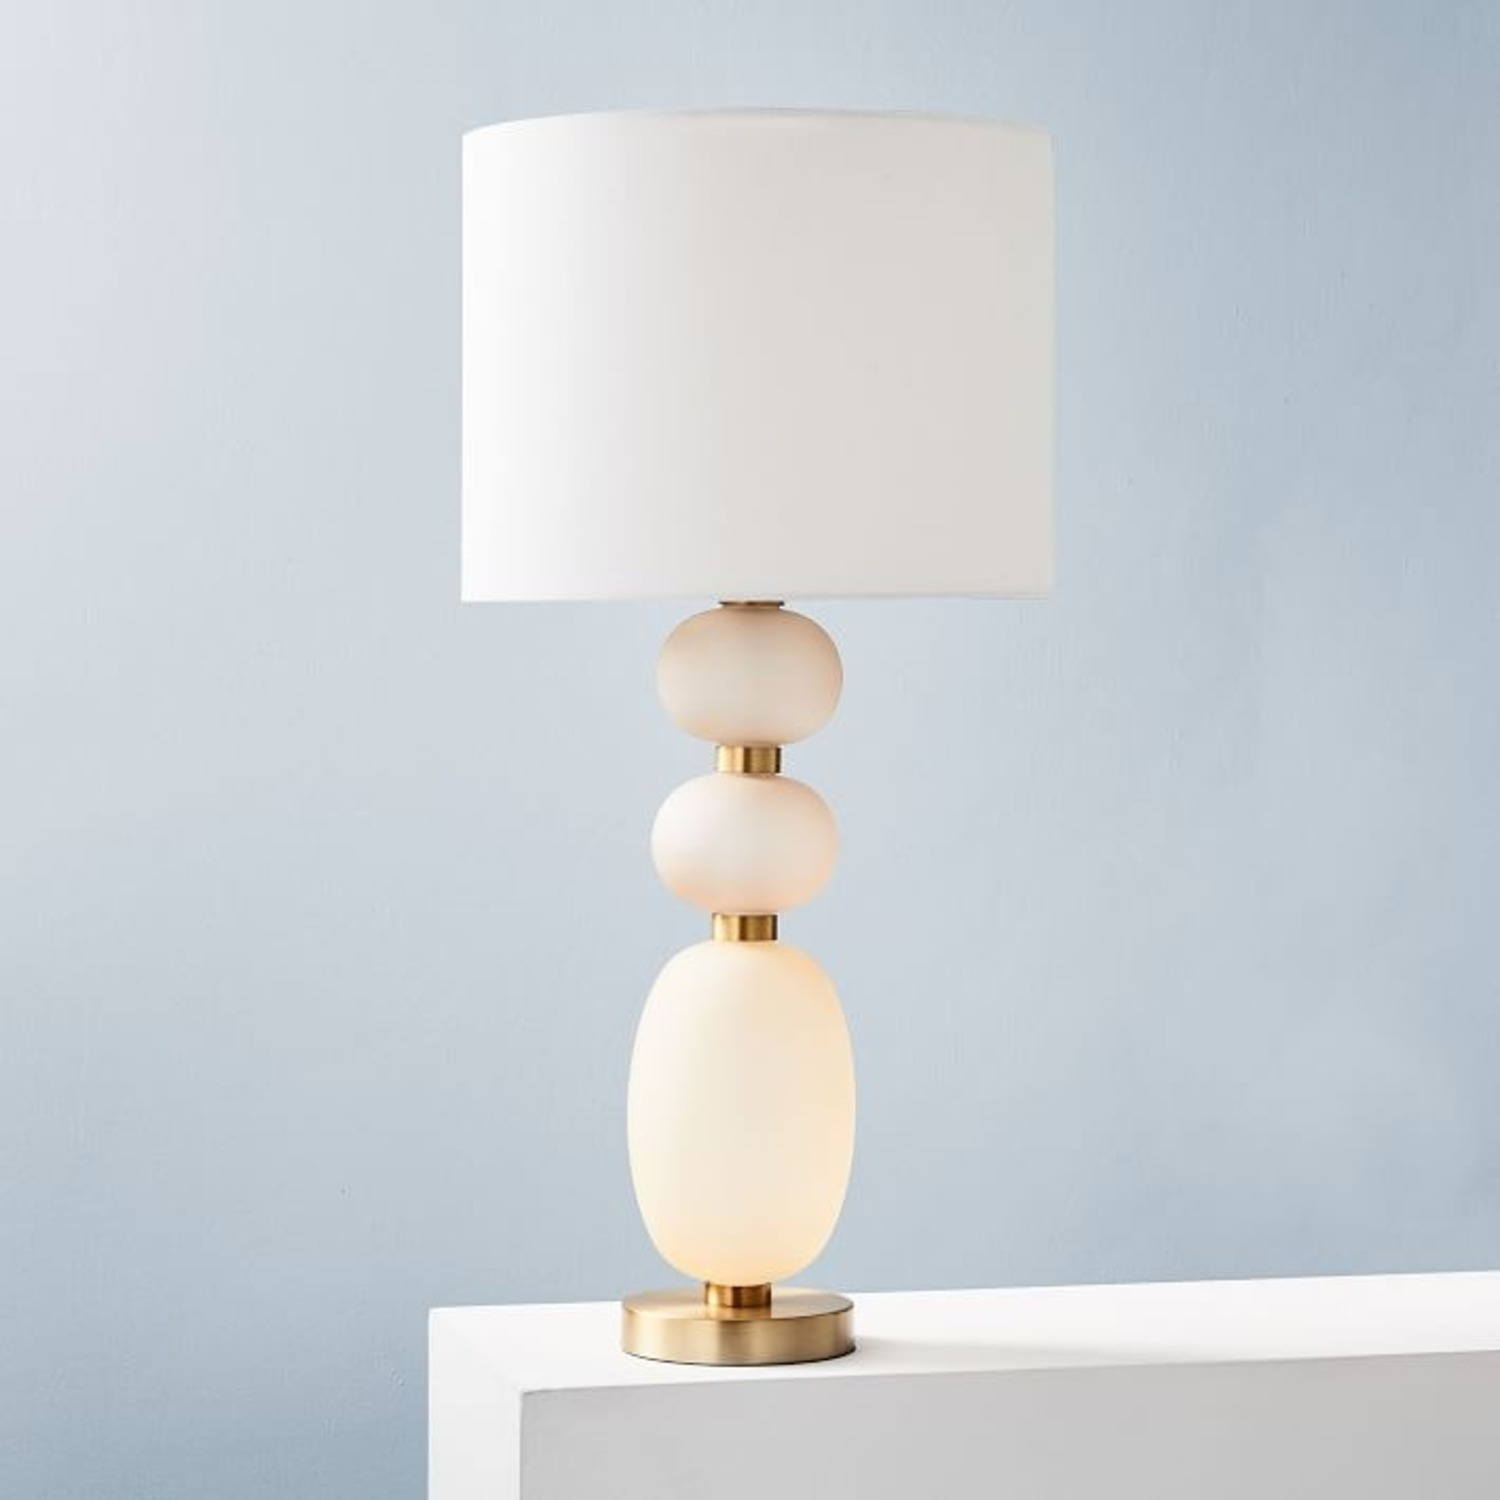 West Elm Lilah Table Lamps - image-2